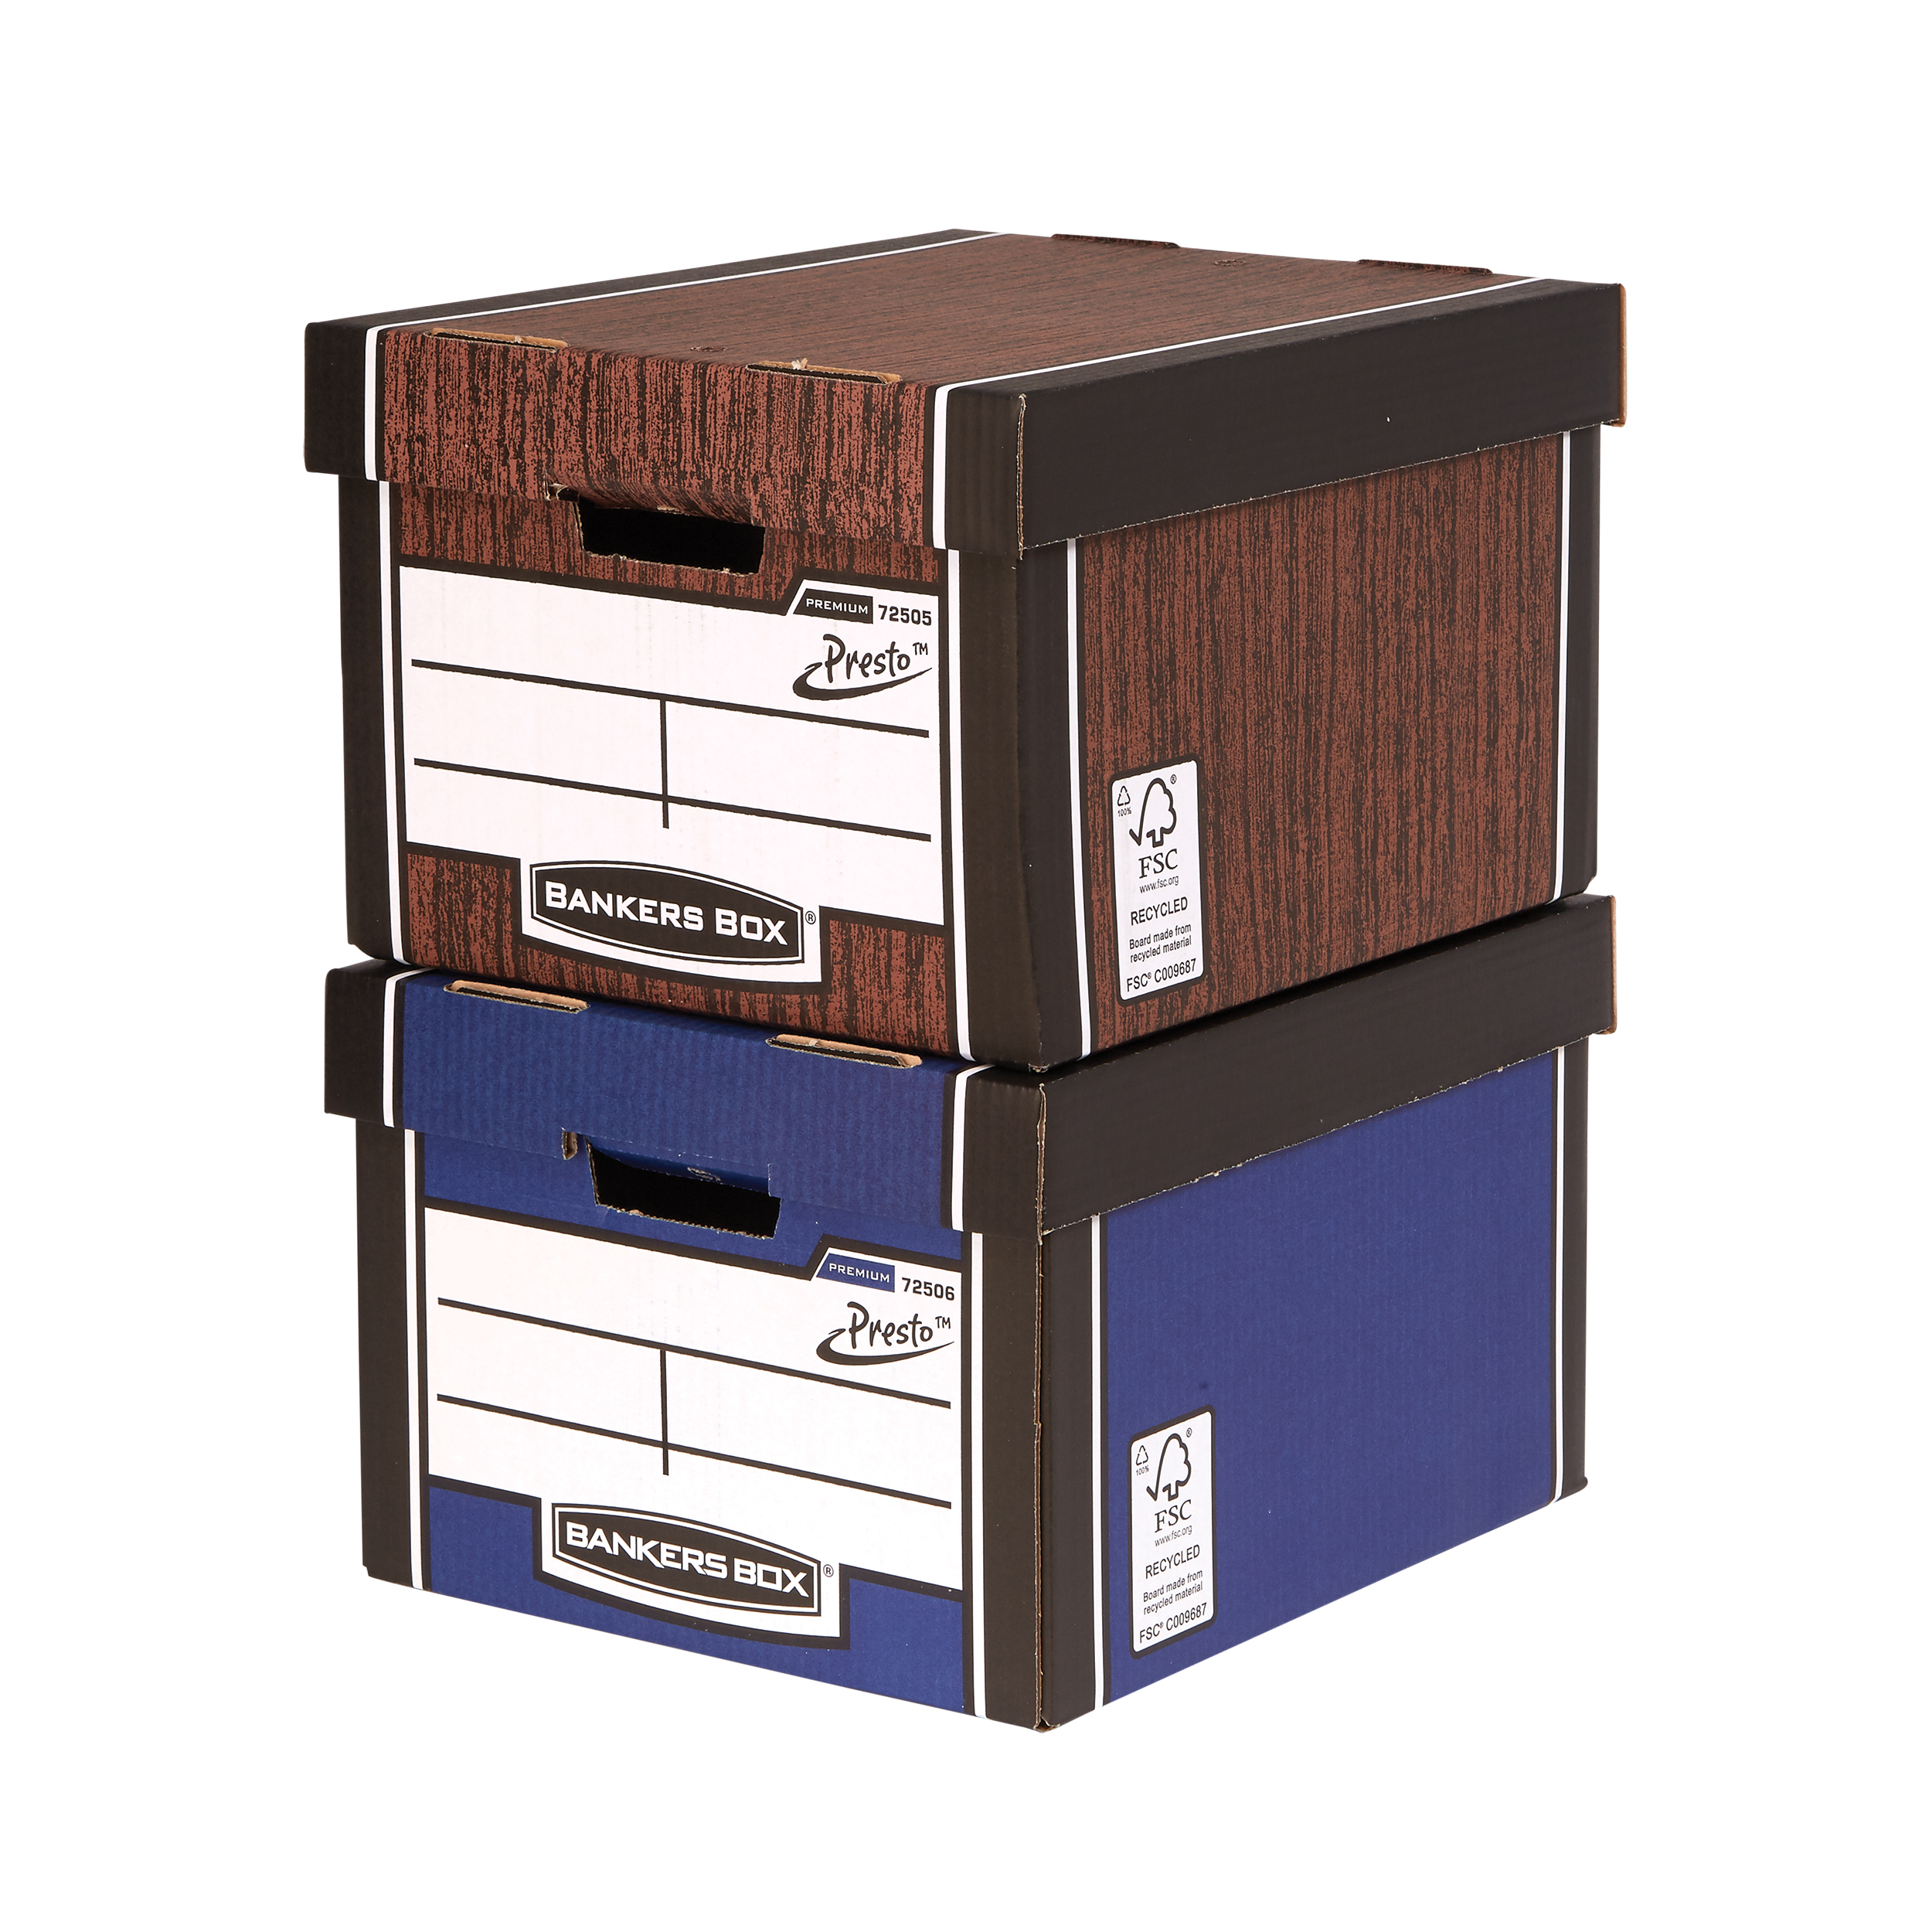 Storage Boxes Bankers Box Premium Storage Box Presto Clsc W/grain FSC Ref7250503 Pack 12 12 for the price of 10